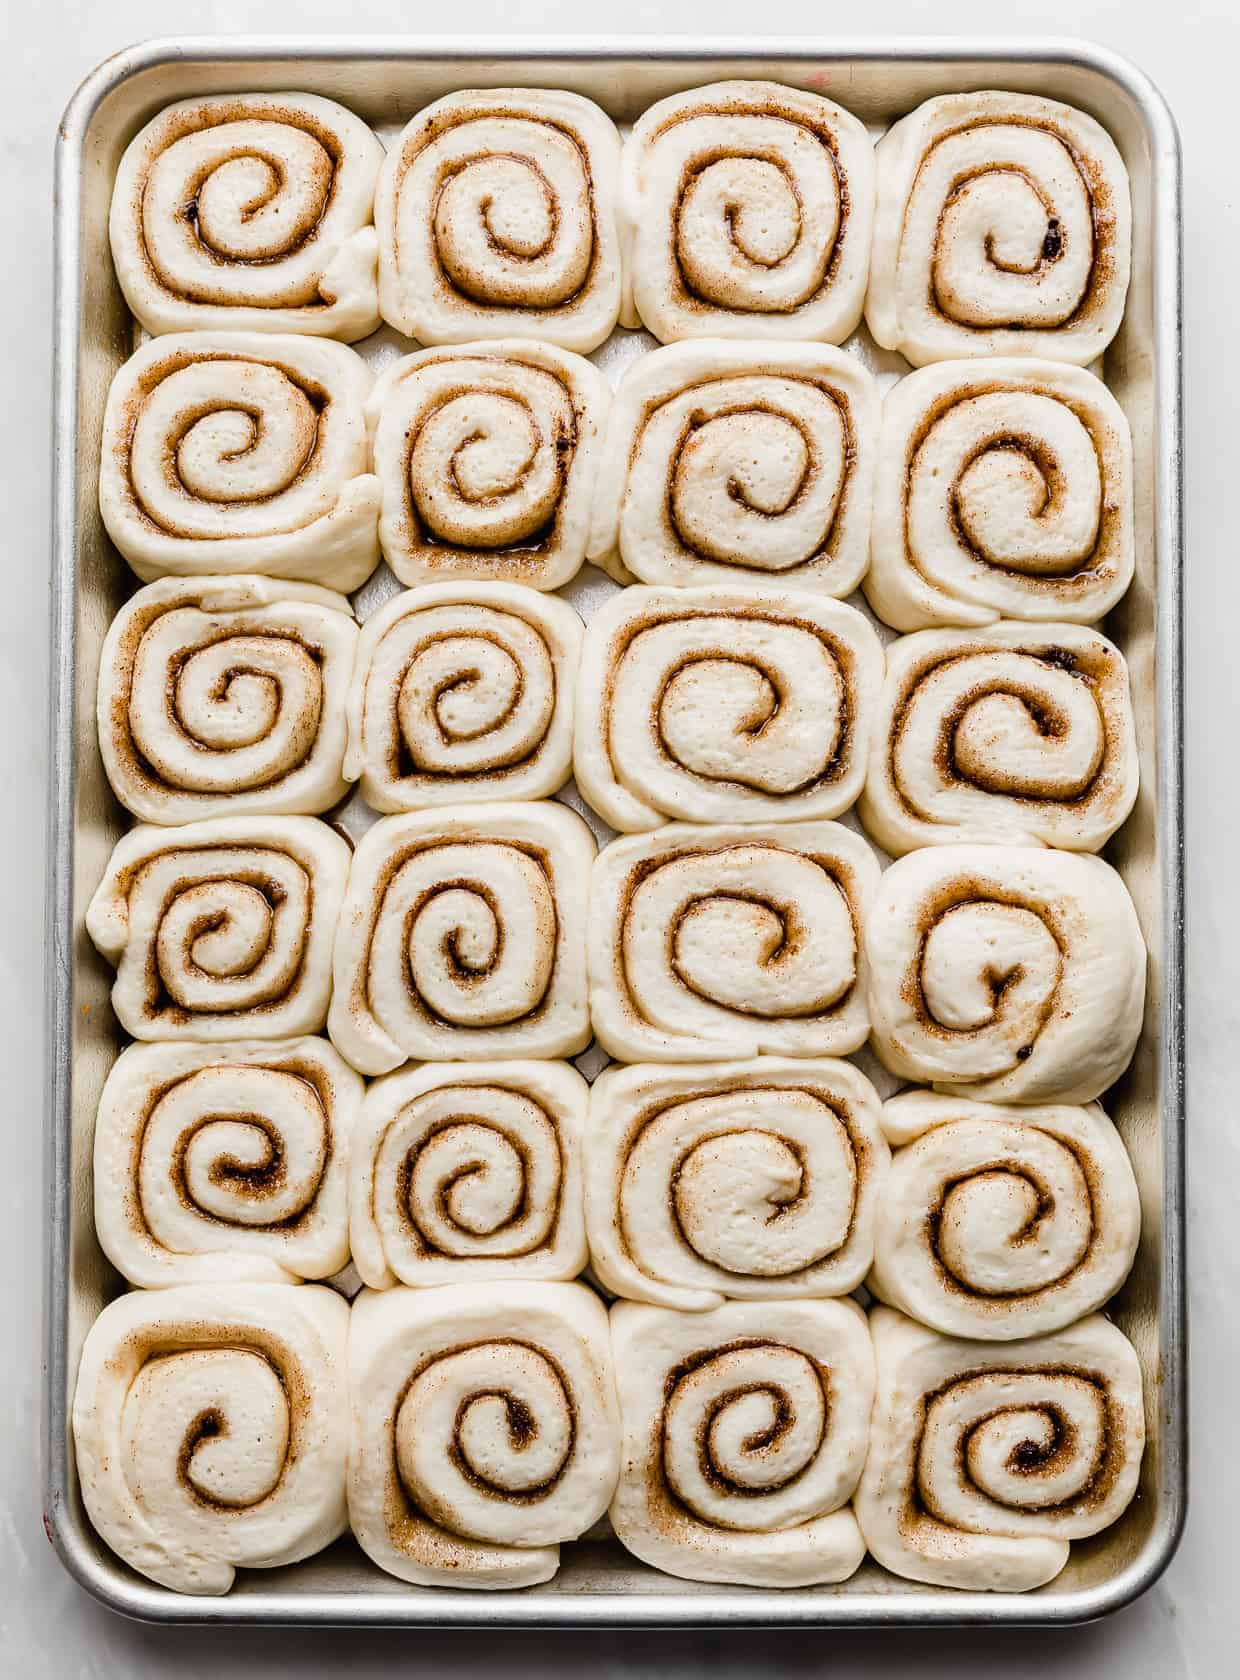 Mini cinnamon rolls on a baking sheet that have proofed and puffed up.